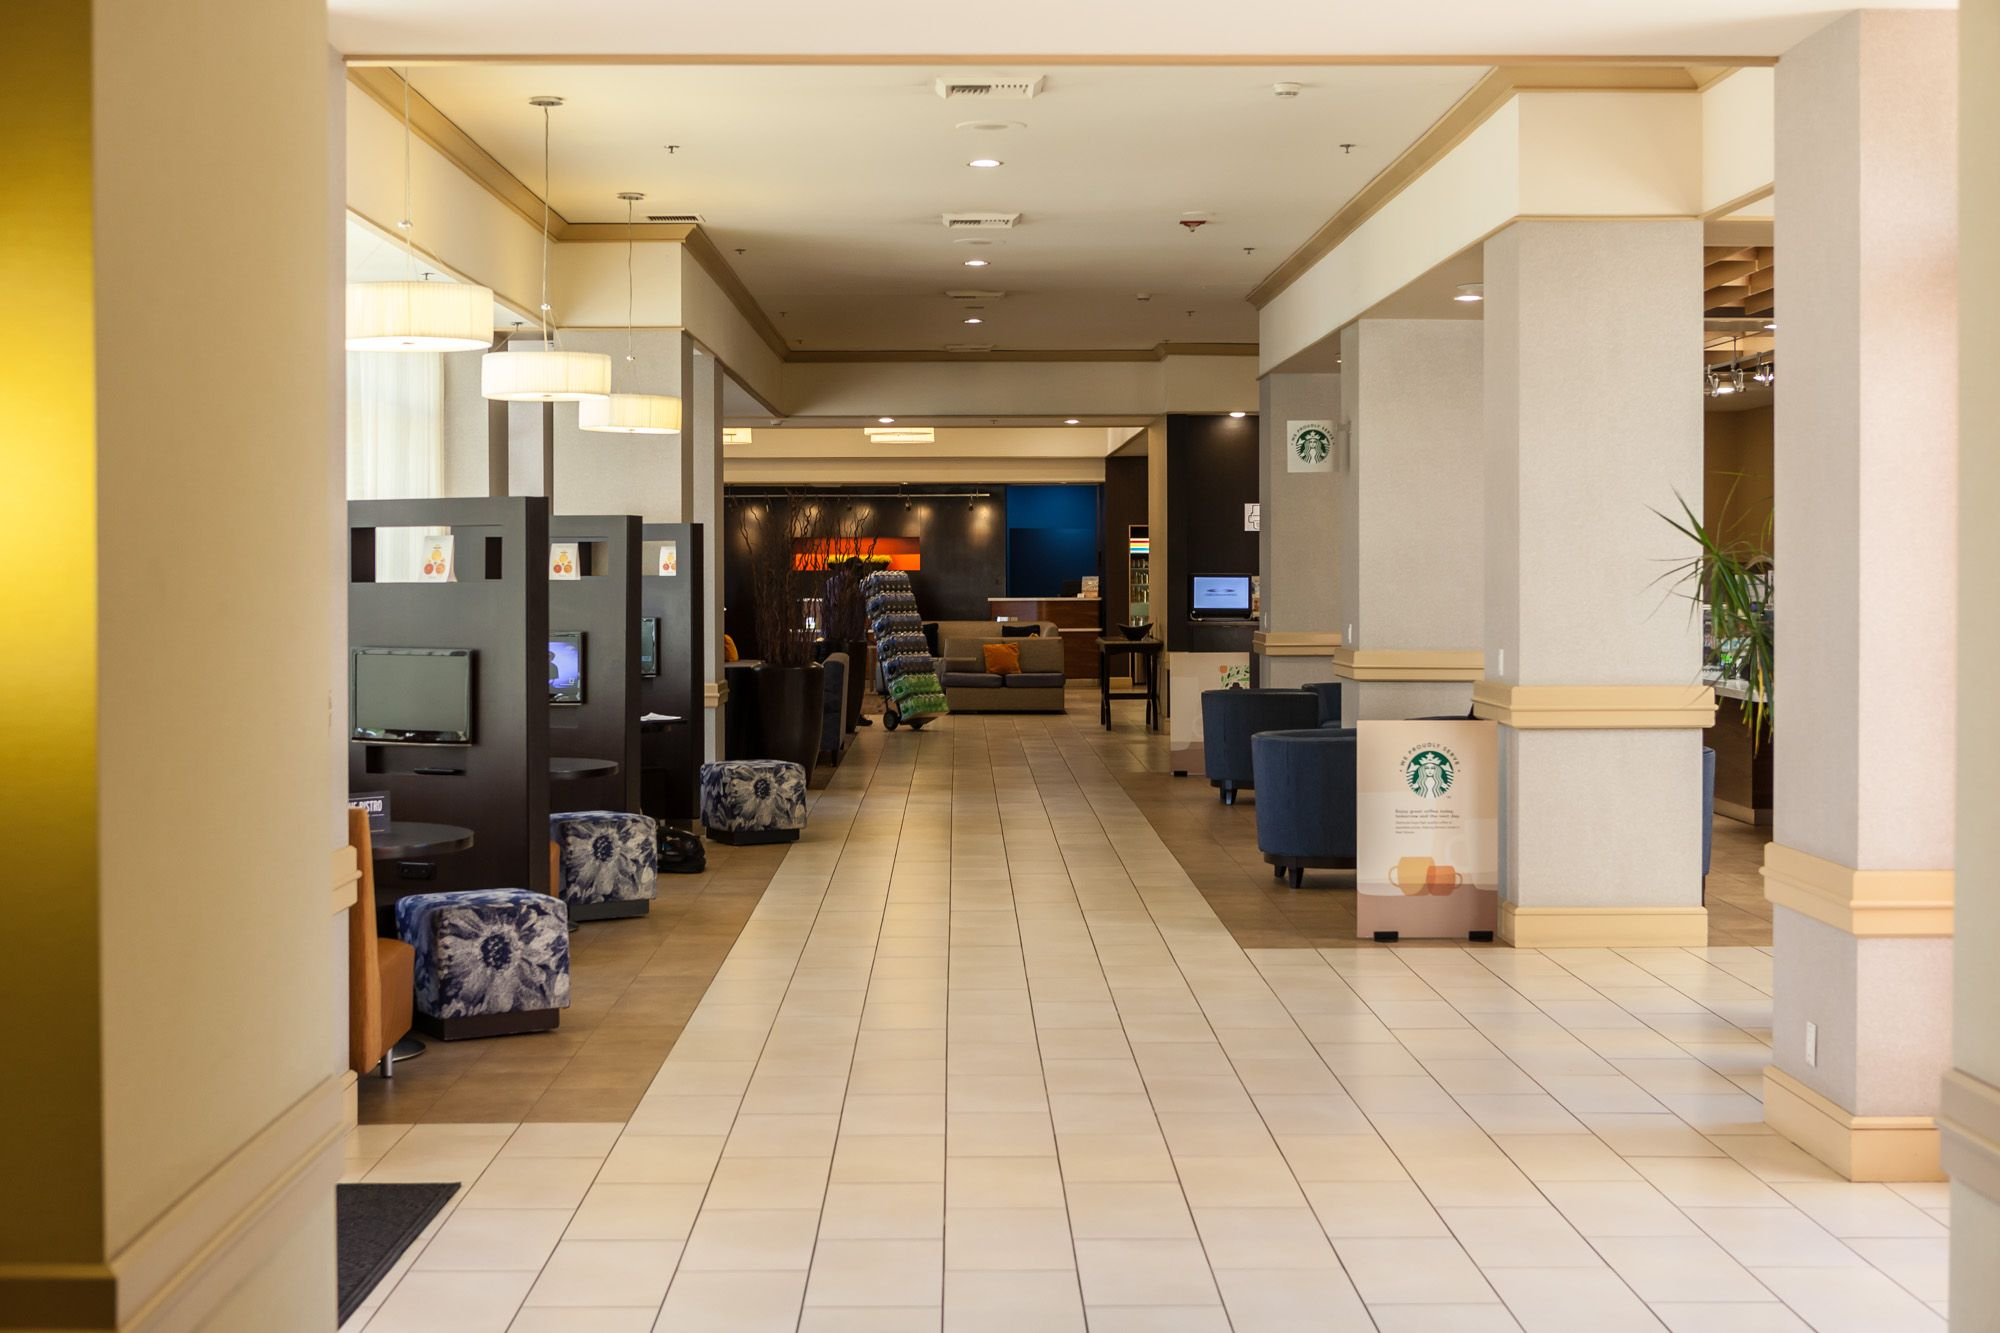 Main hallway: Some seating to the lft and the Bistro to the right. At the far end the Check-in area.